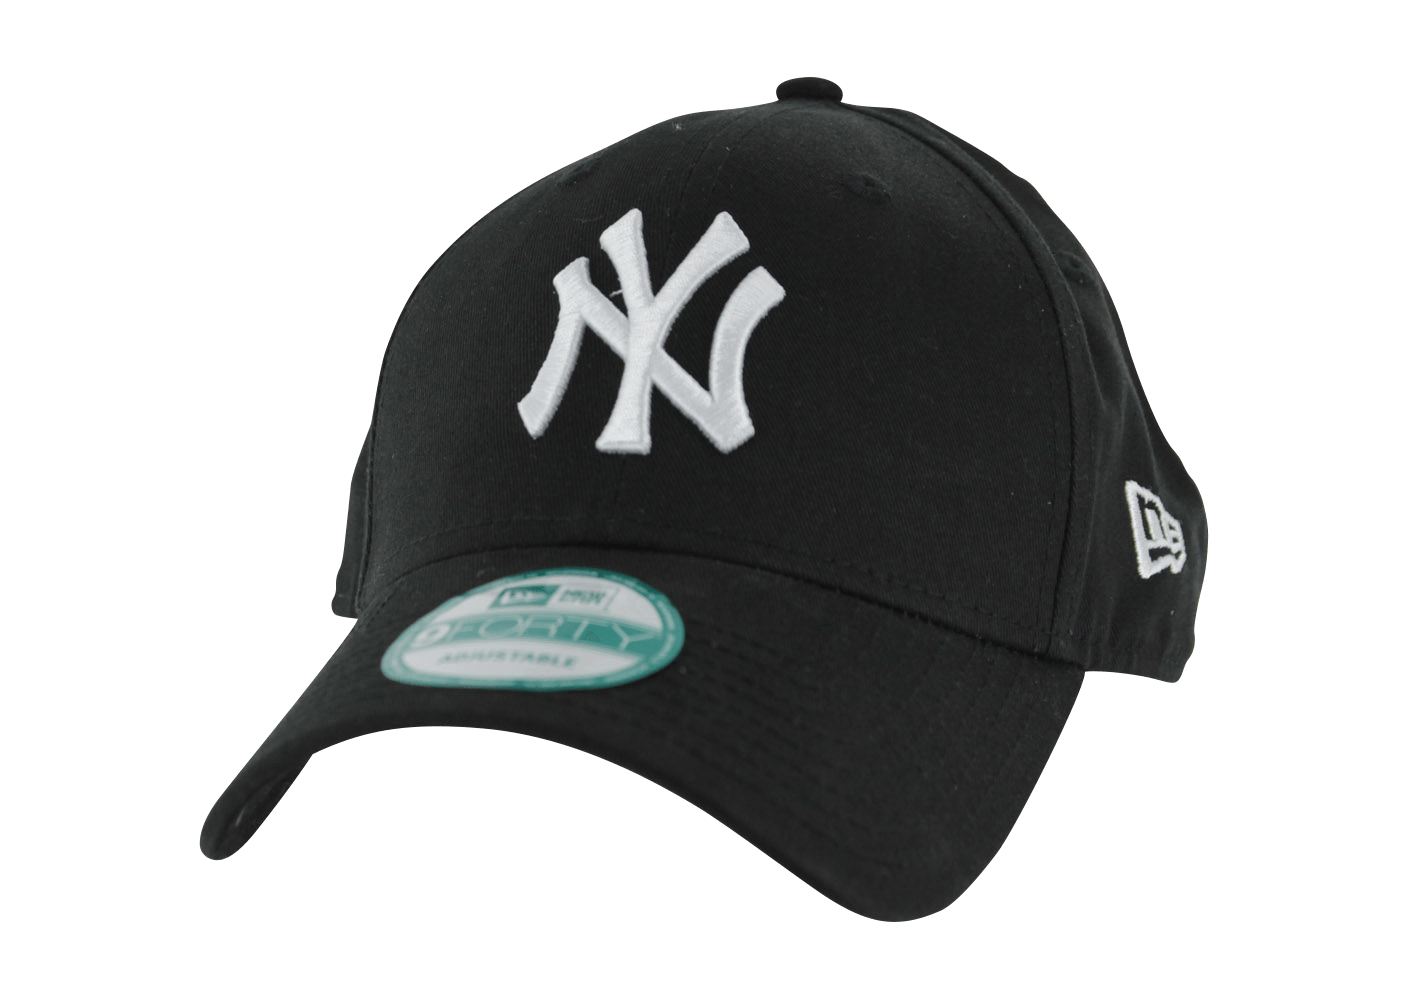 new era casquette 9 40 mlb the league new york yankees noir et blanc casquettes chausport. Black Bedroom Furniture Sets. Home Design Ideas